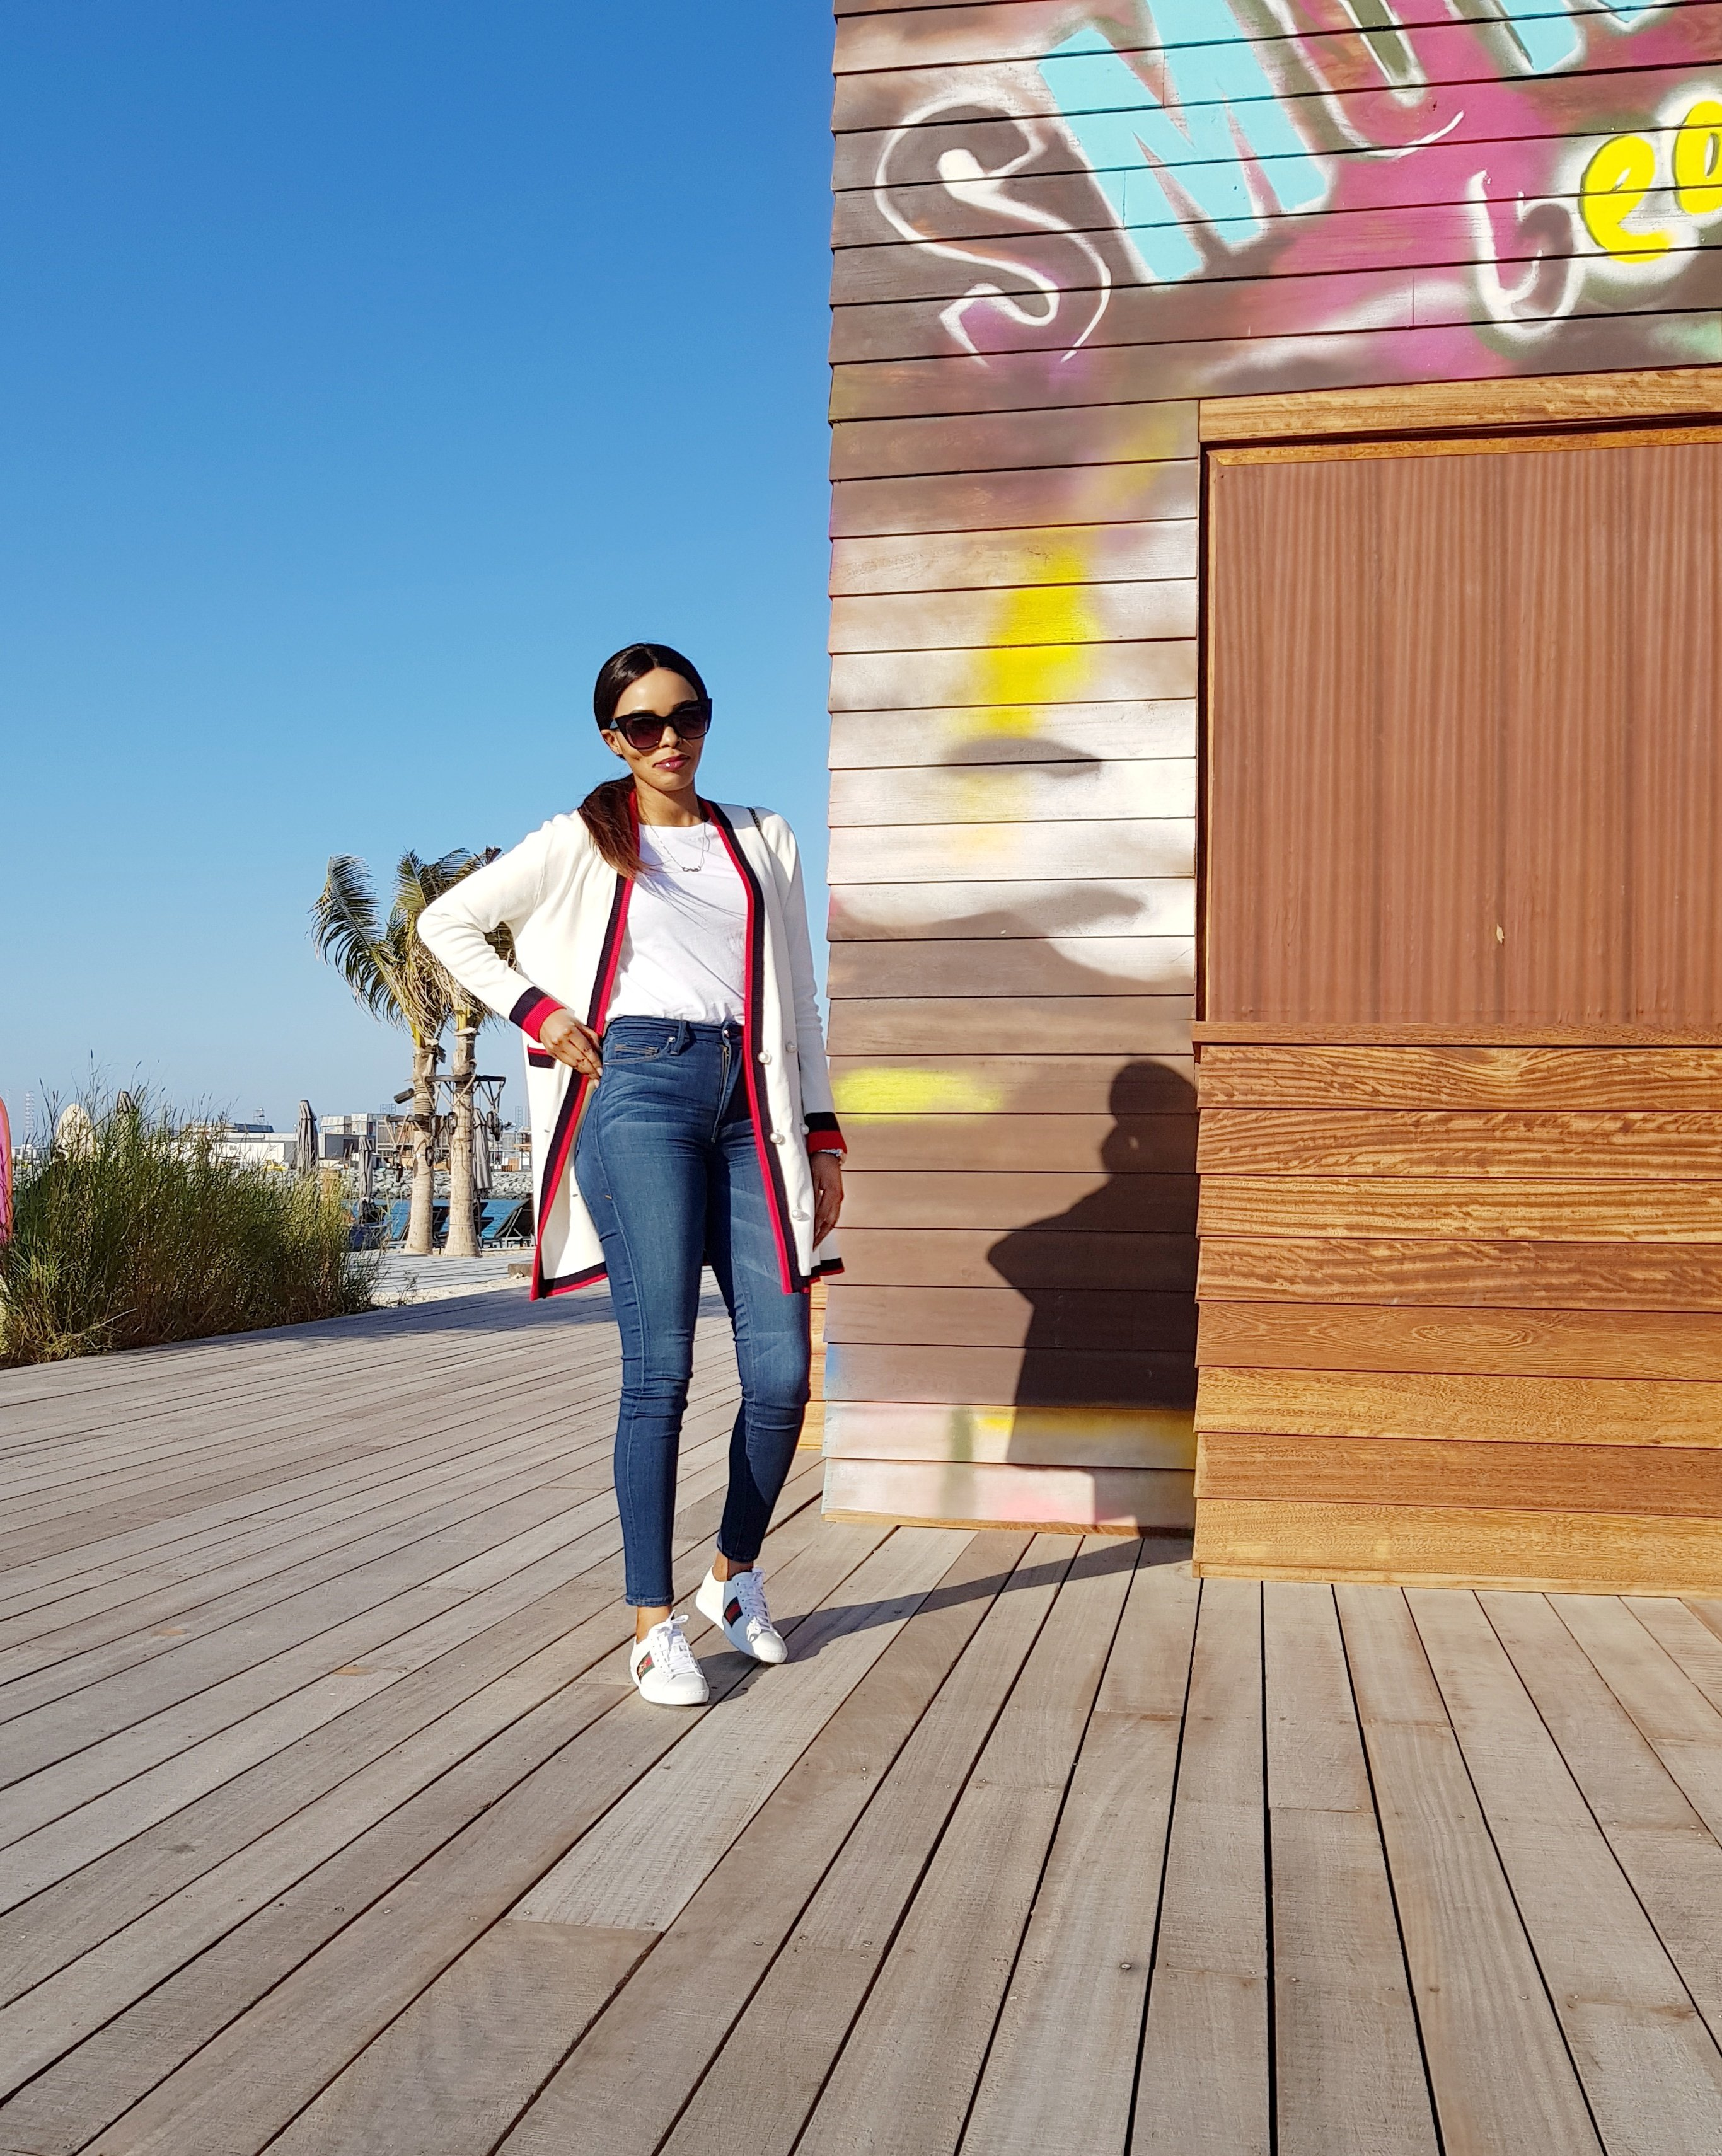 How To Describe Personal Style In A Three-Word Rule: Loise Lamba From Emerald Beam